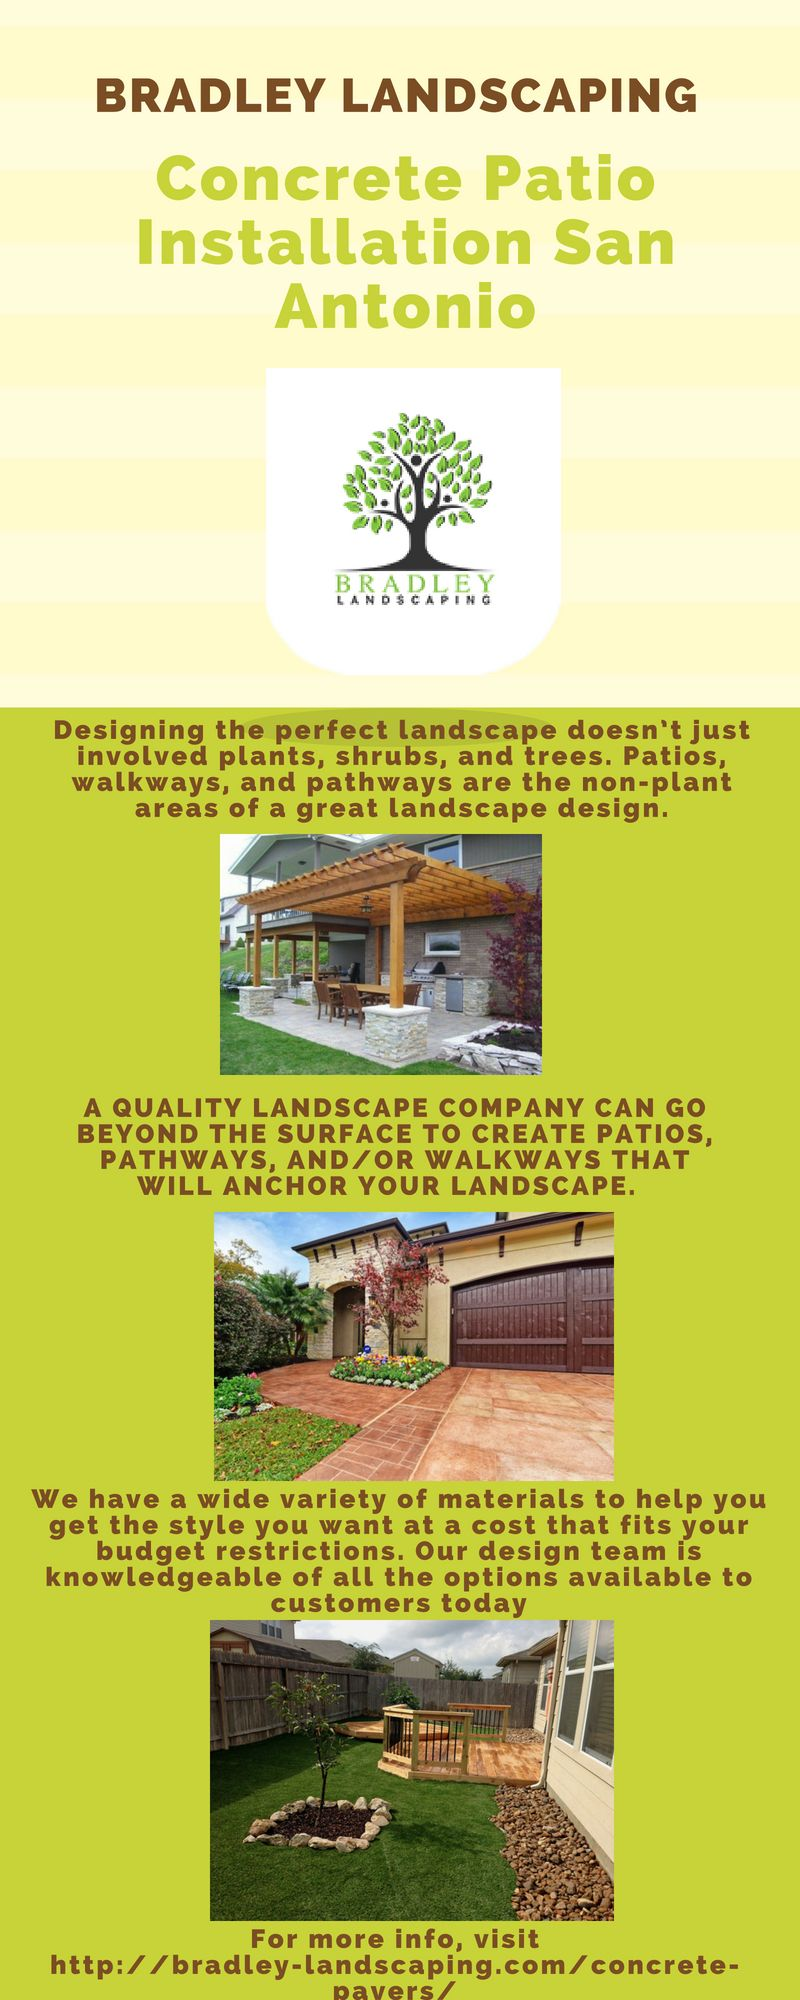 A Quality Landscape Company Can Go Beyond The Surface To Create Patios Pathways And